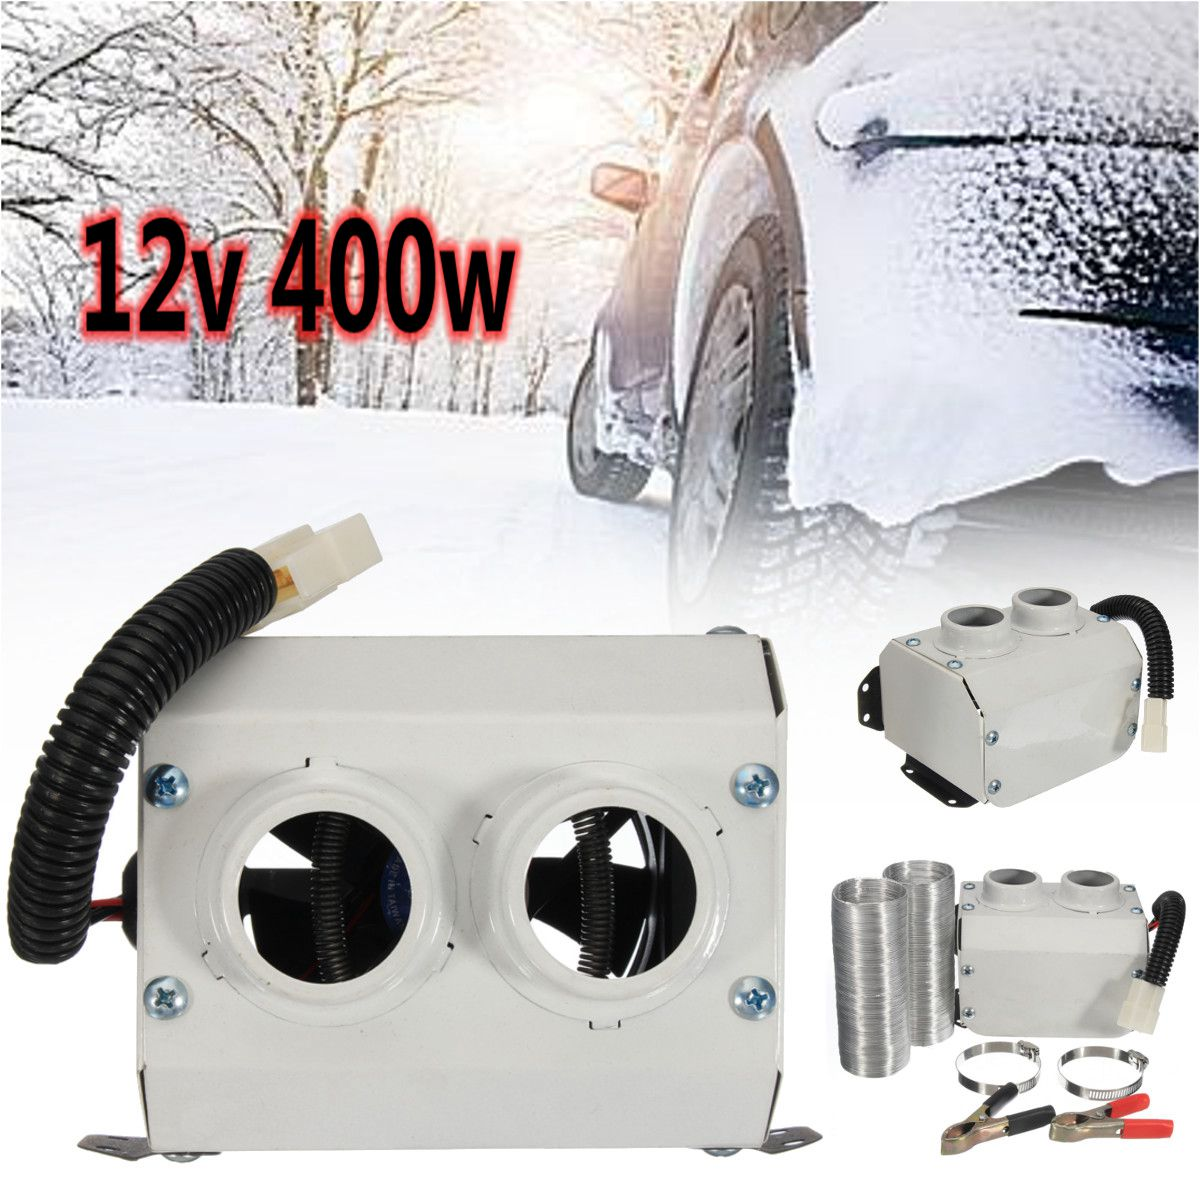 DC 12V 400W Double Hole Car Heater Warmer Fans Protect Window Defroster Demister